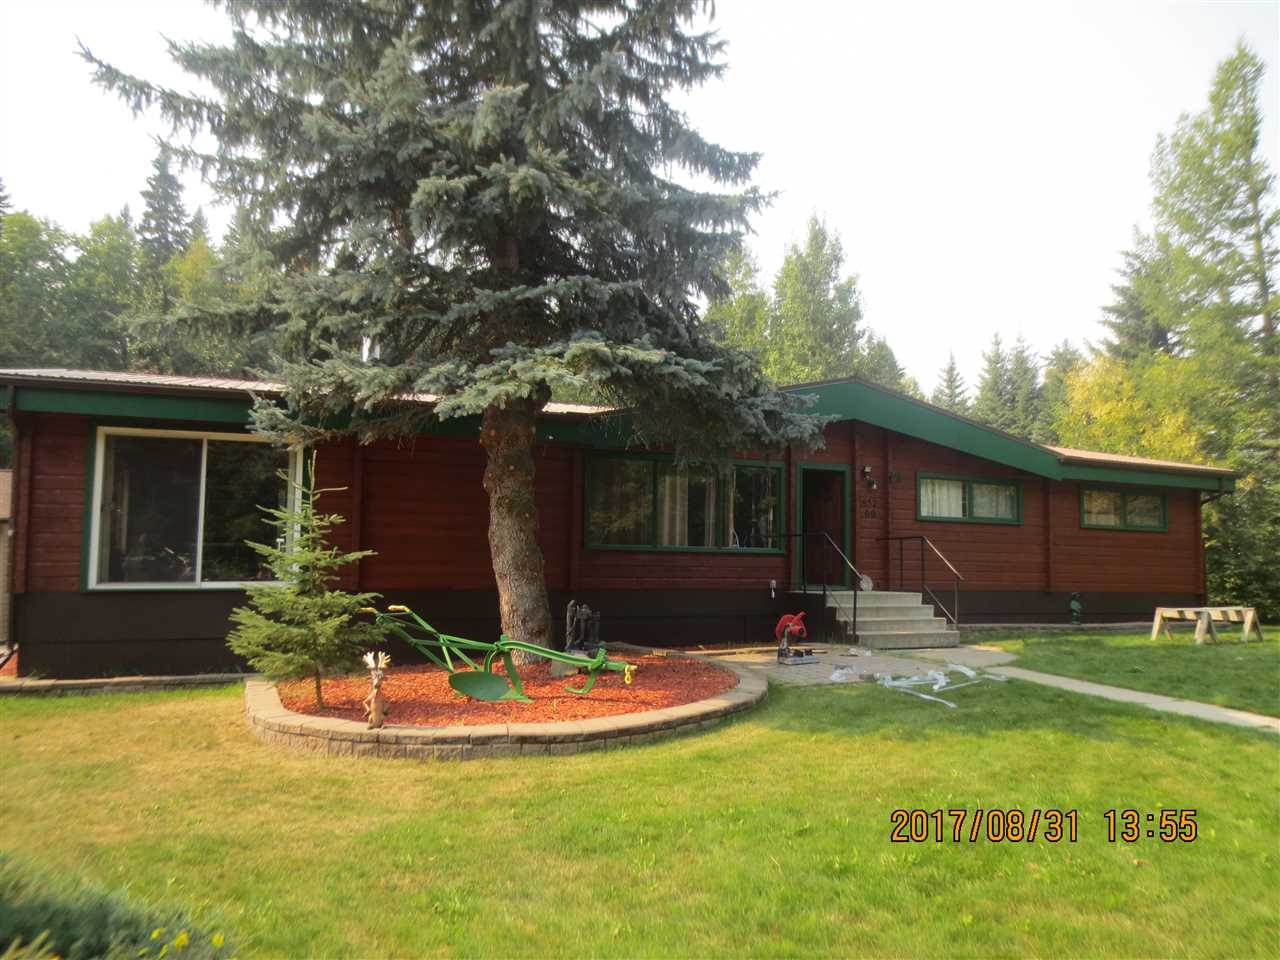 Below Appraised Value! 21.28 Acres in The Town of Edson! Country living, with Town Convenience! Beautiful 1840 sq. ft. Cedar log home on a very private acreage in Town Limits. Home features: 5 bedrooms, 3 bathrooms, living room with stone fireplace, lg family room, new kitchen with granite countertops, beautiful tile backsplash, new stainless steel appliances, upstairs laundry w/sink, & large windows. Basement includes 2 lg bedrooms, office, rec room, utility, storage, 3 pc bathroom & a huge wood stove. Quiet area, with a fully landscaped yard with mature trees, shrubs, garden area, flowerbeds, huge 2-tiered deck overlooking the b/yard, patio area, dbl/det garage with new siding & roof, cement floor & 220 wiring, 1148 sq. ft. Shop with dbl doors, cement floors, 220 wiring, fenced area & animal shelters & a paved driveway. Land is mostly bush with lg mature poplar, spruce, & pine trees. This property is designed for private acreage living with the option to run your own business with endless possibilities.